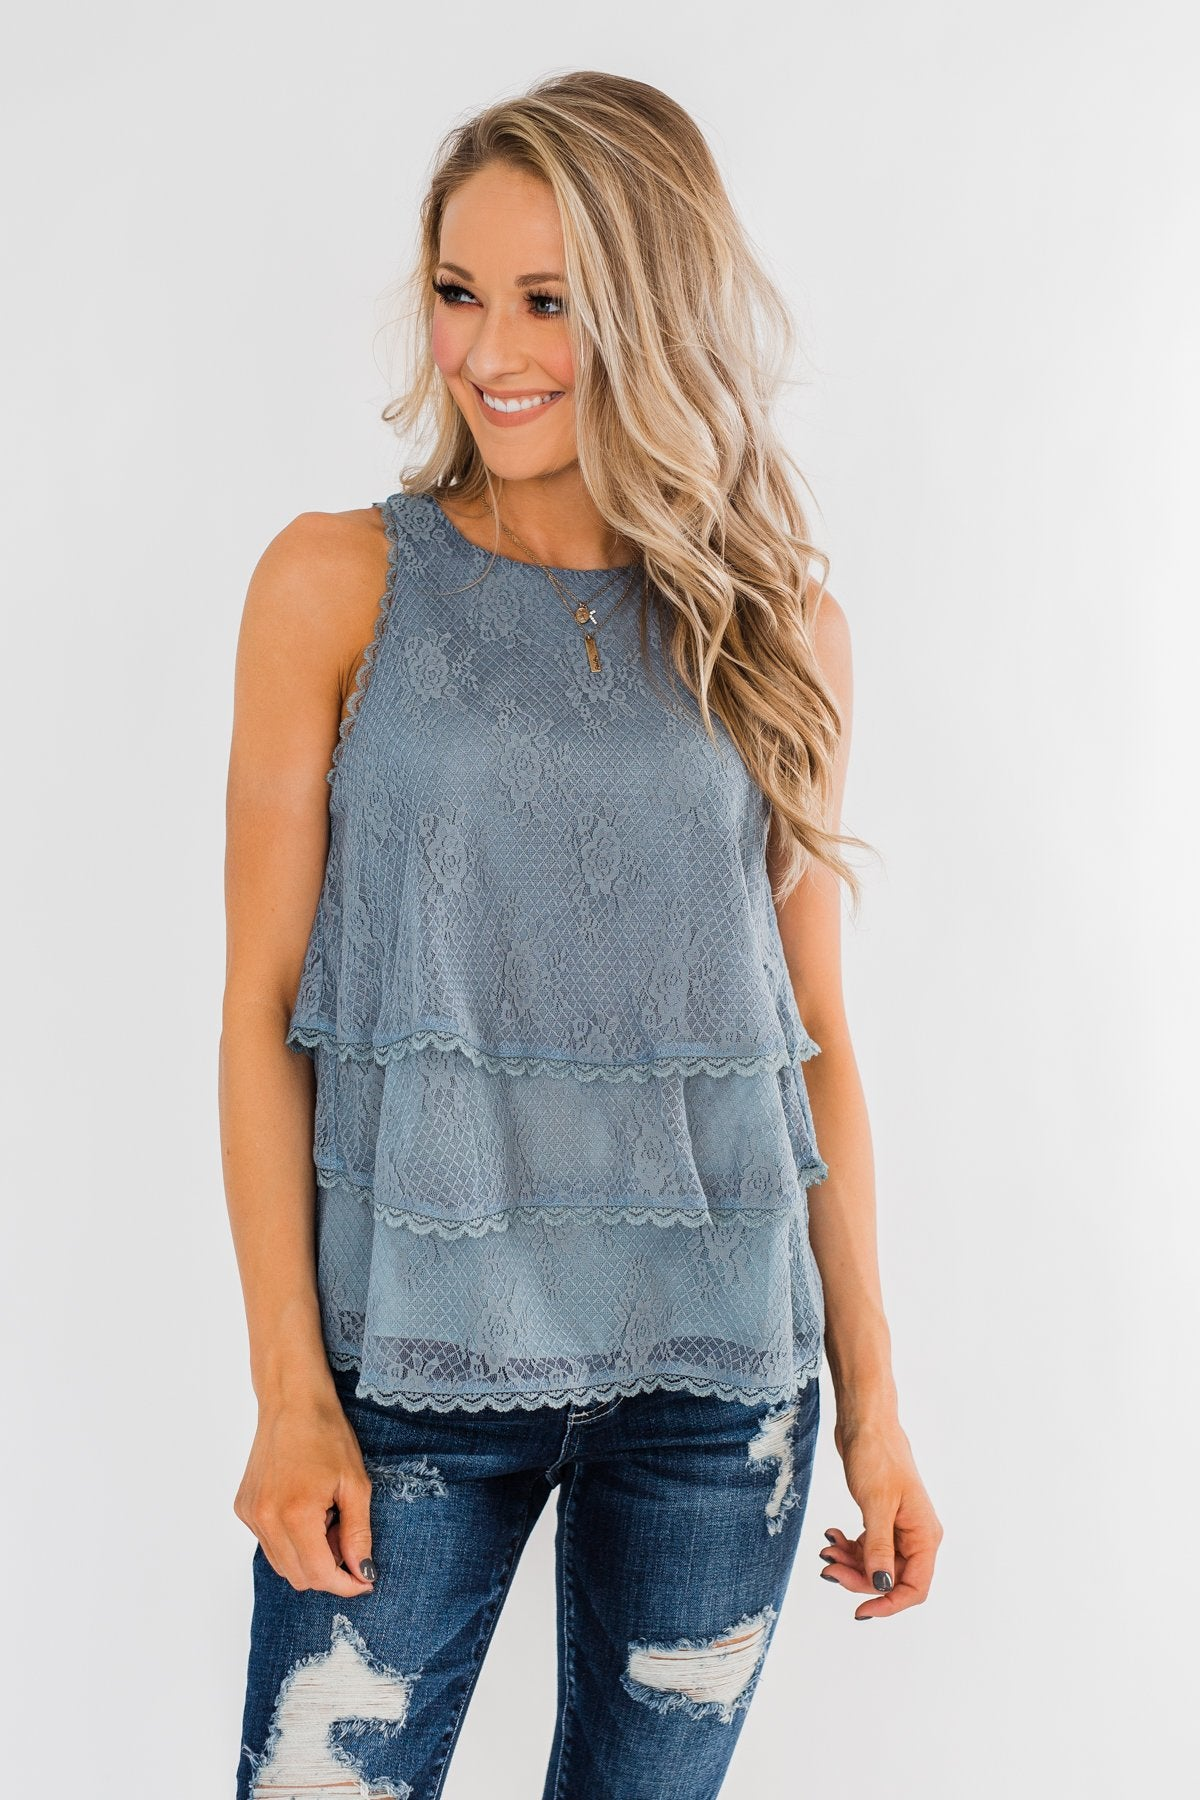 Captivating In Lace Ruffle Tank Top- Slate Blue